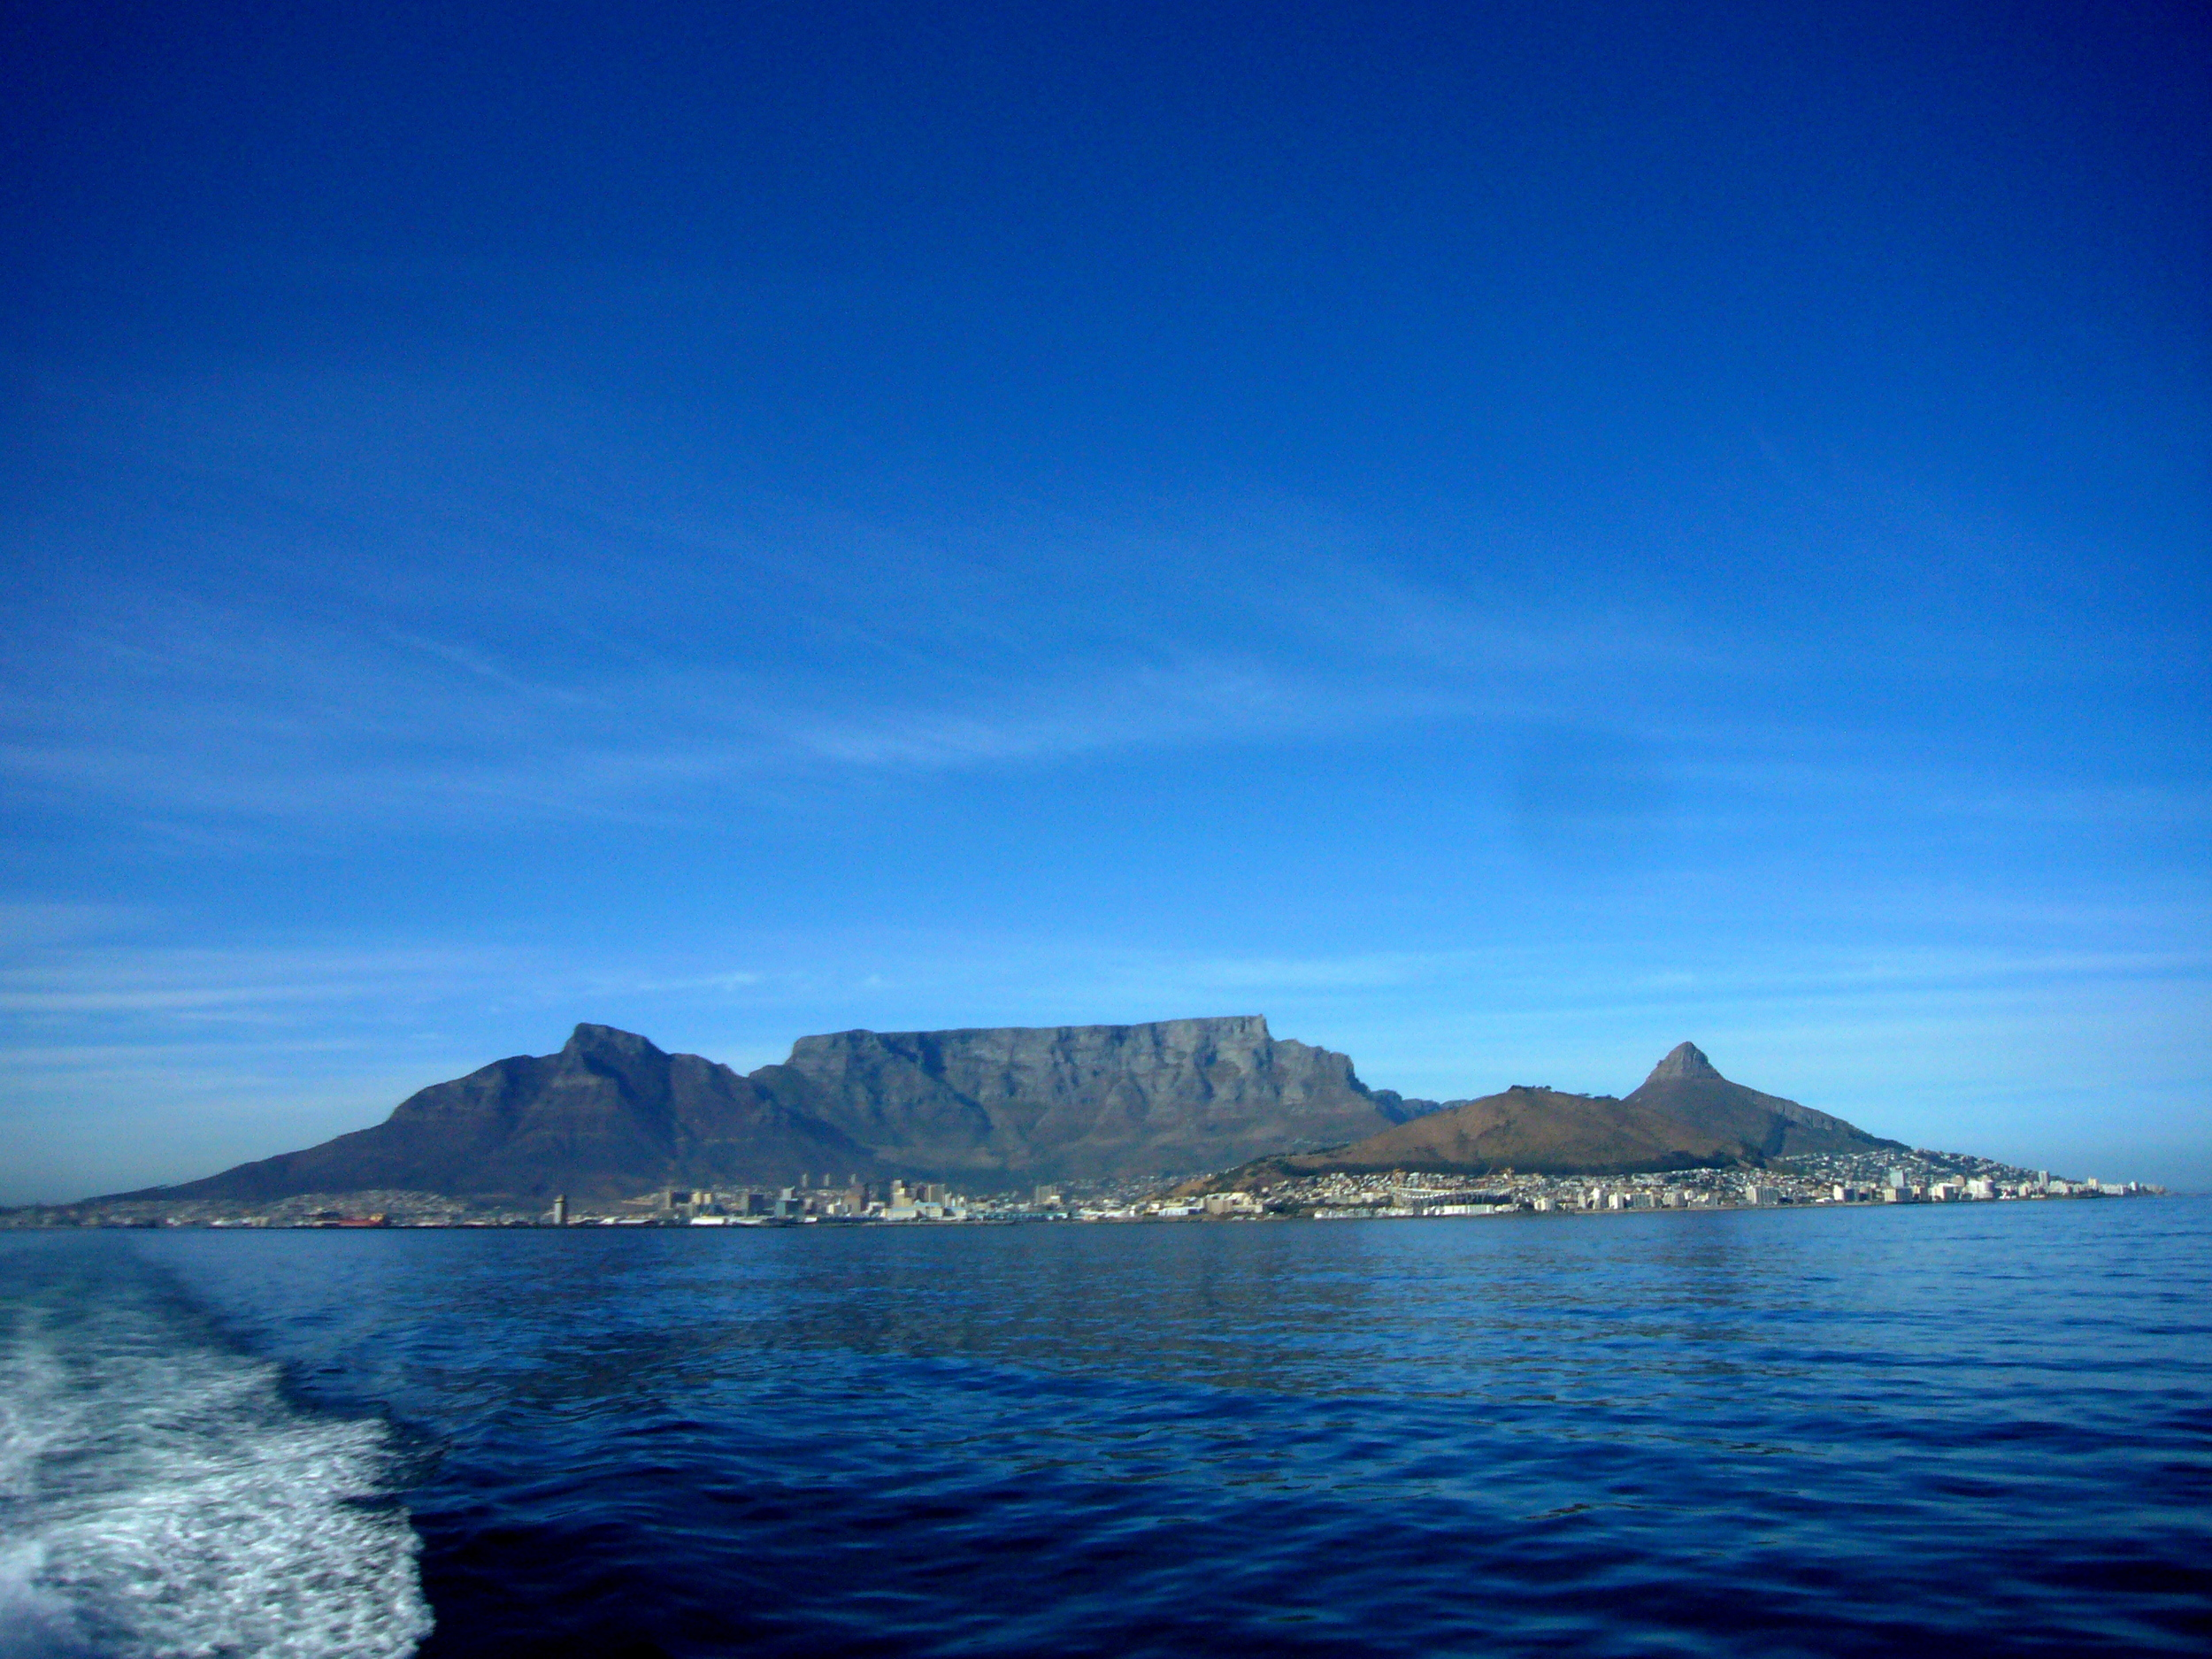 From the boat to Robben Island